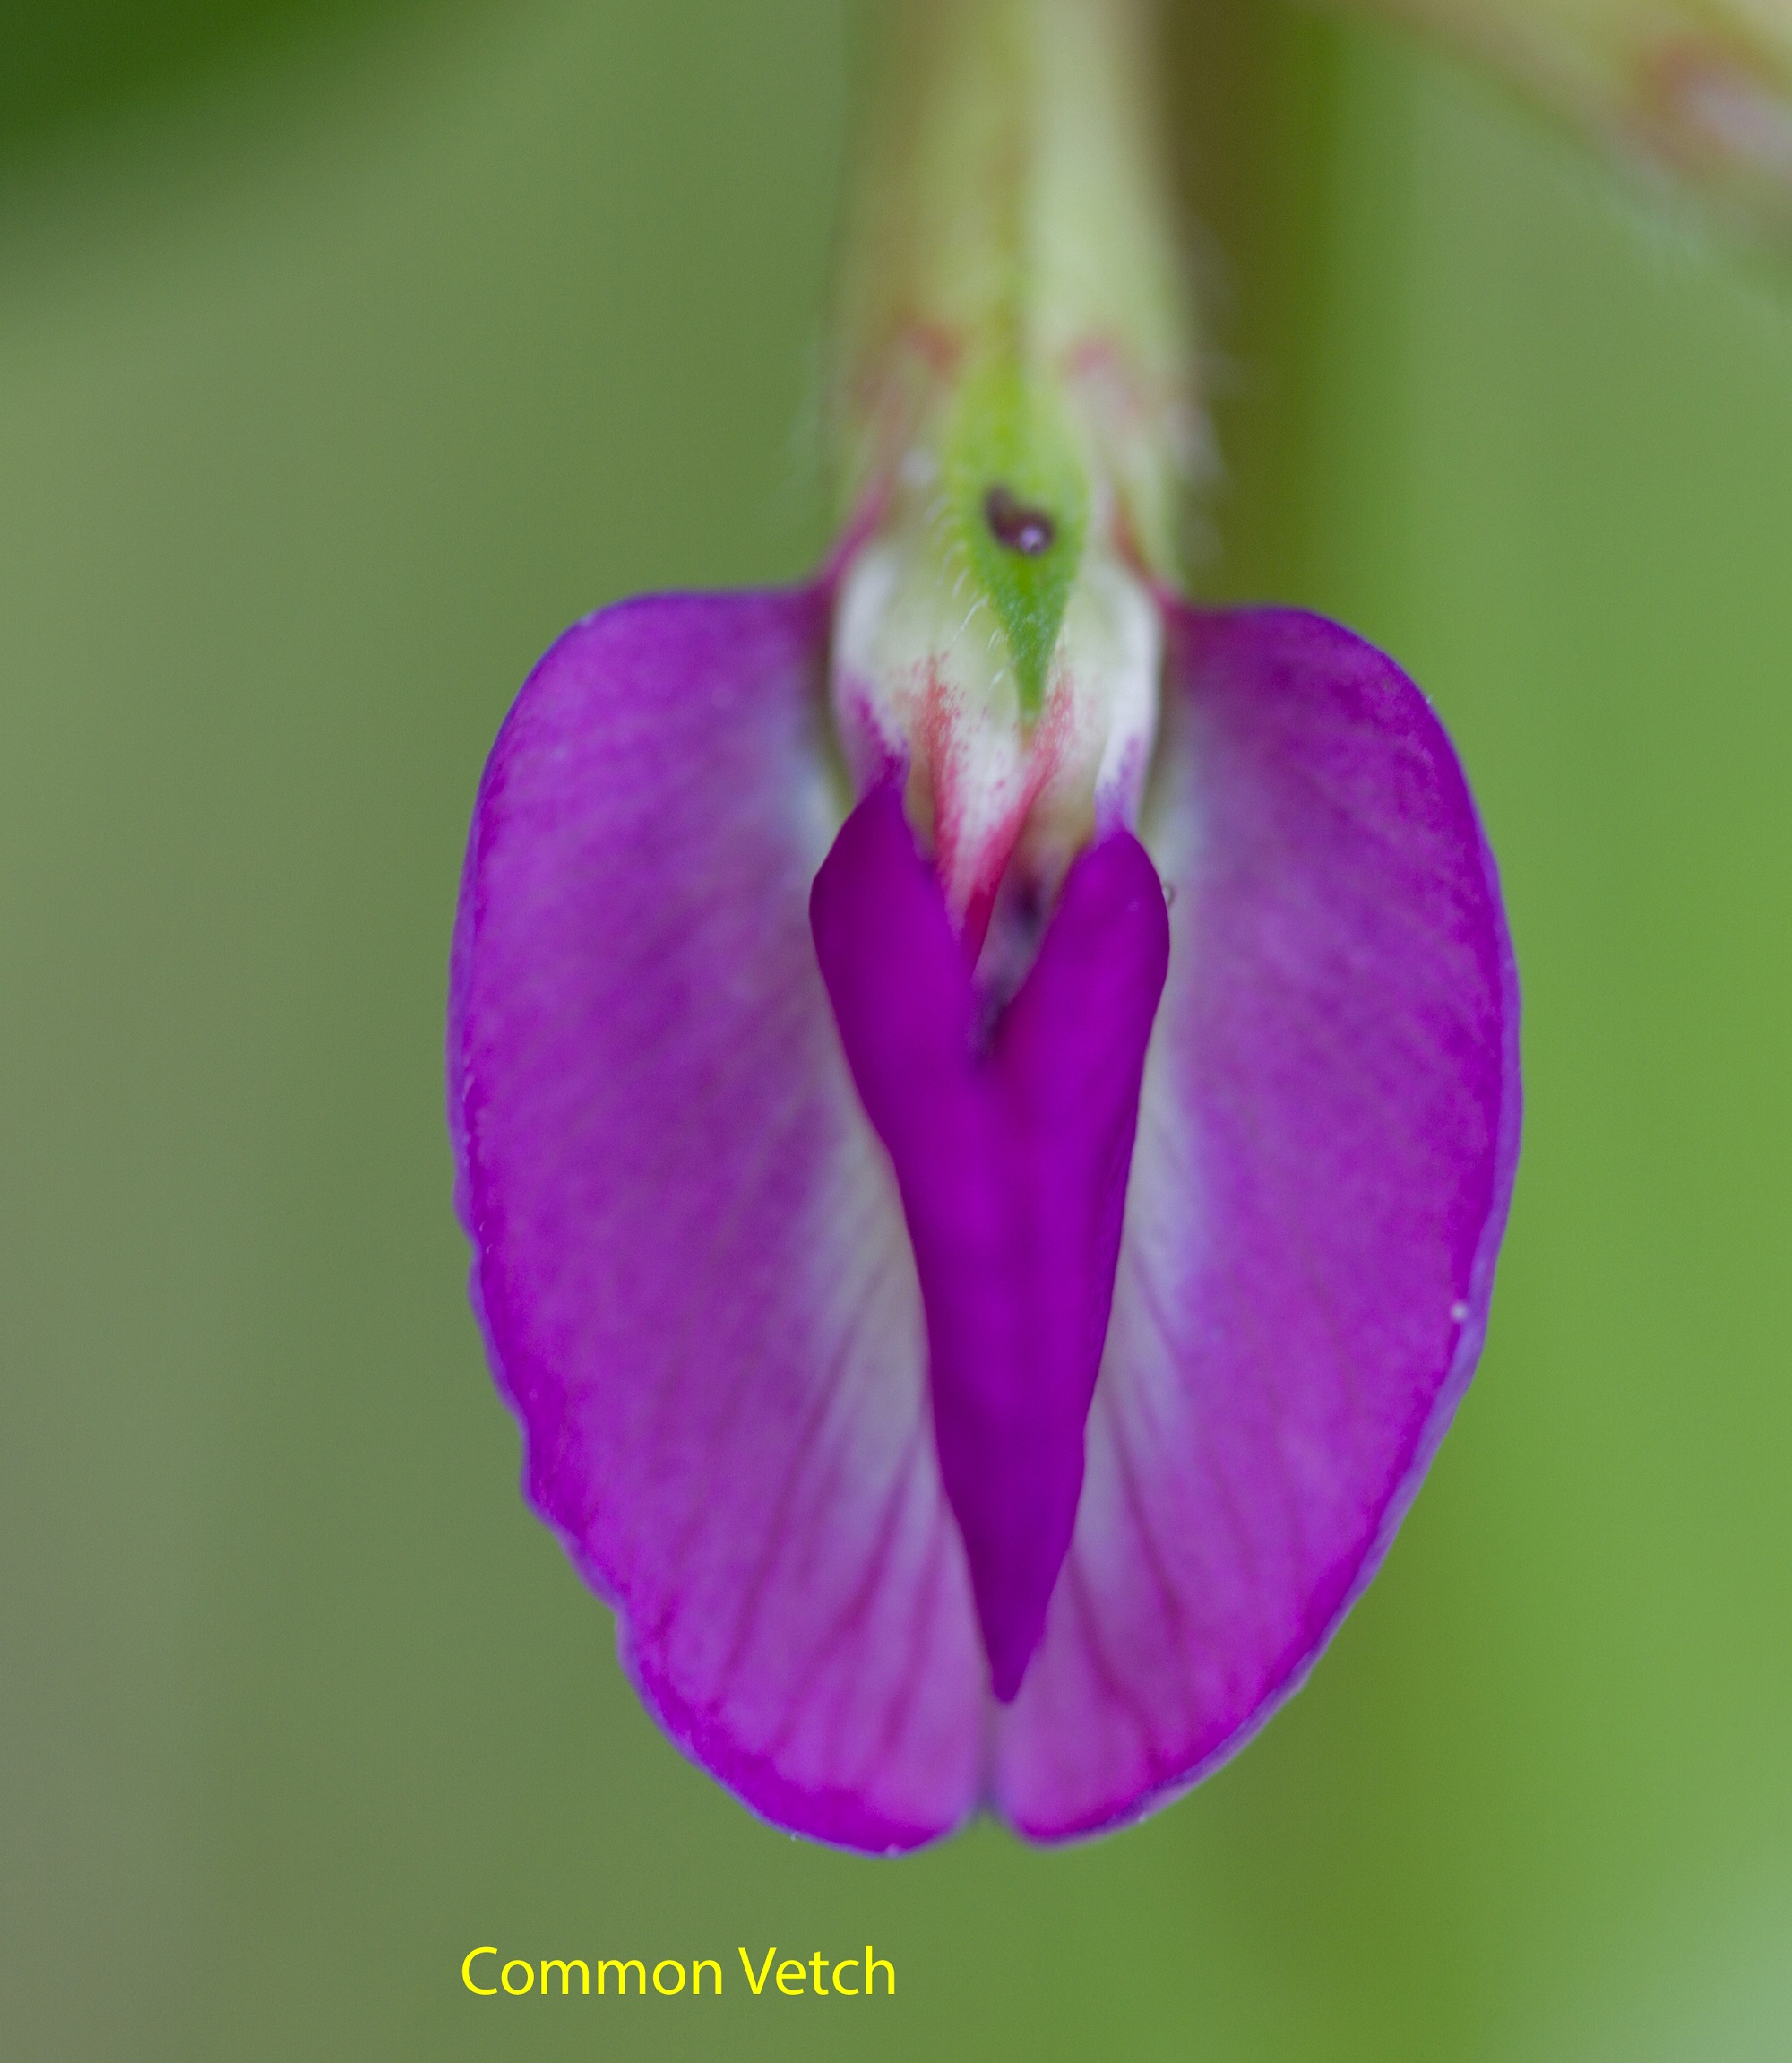 029-common-vetch_edited-1-1-22873a57b6c2eab7b902c62017cc841b6693d499